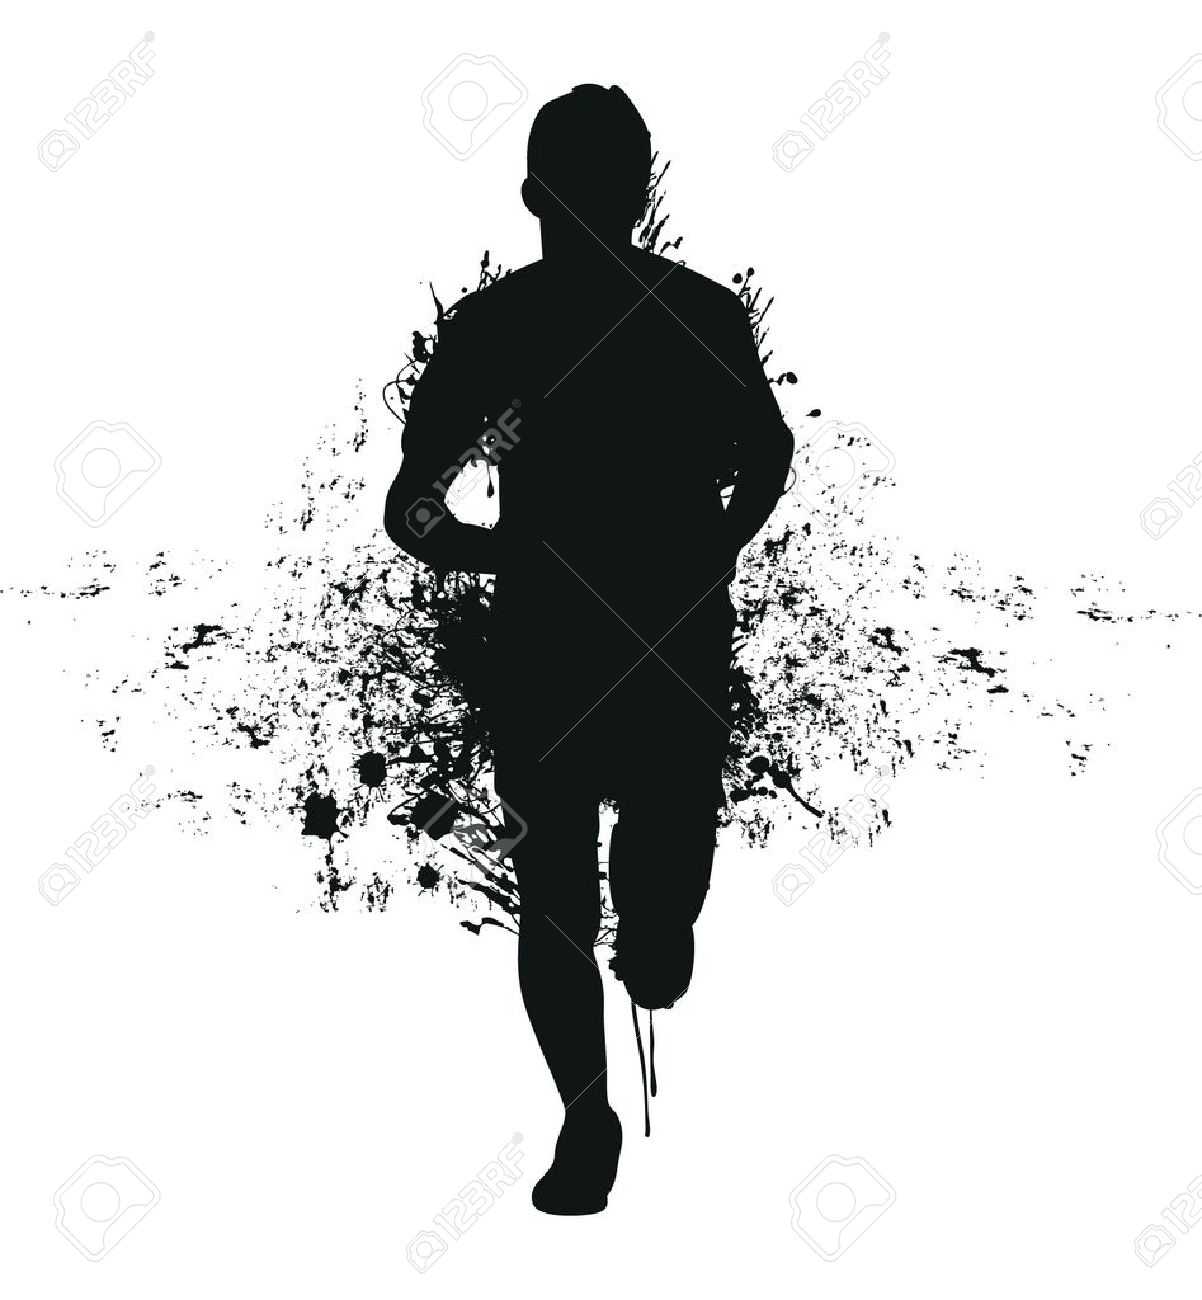 22,803 Running Race Cliparts, Stock Vector And Royalty Free.